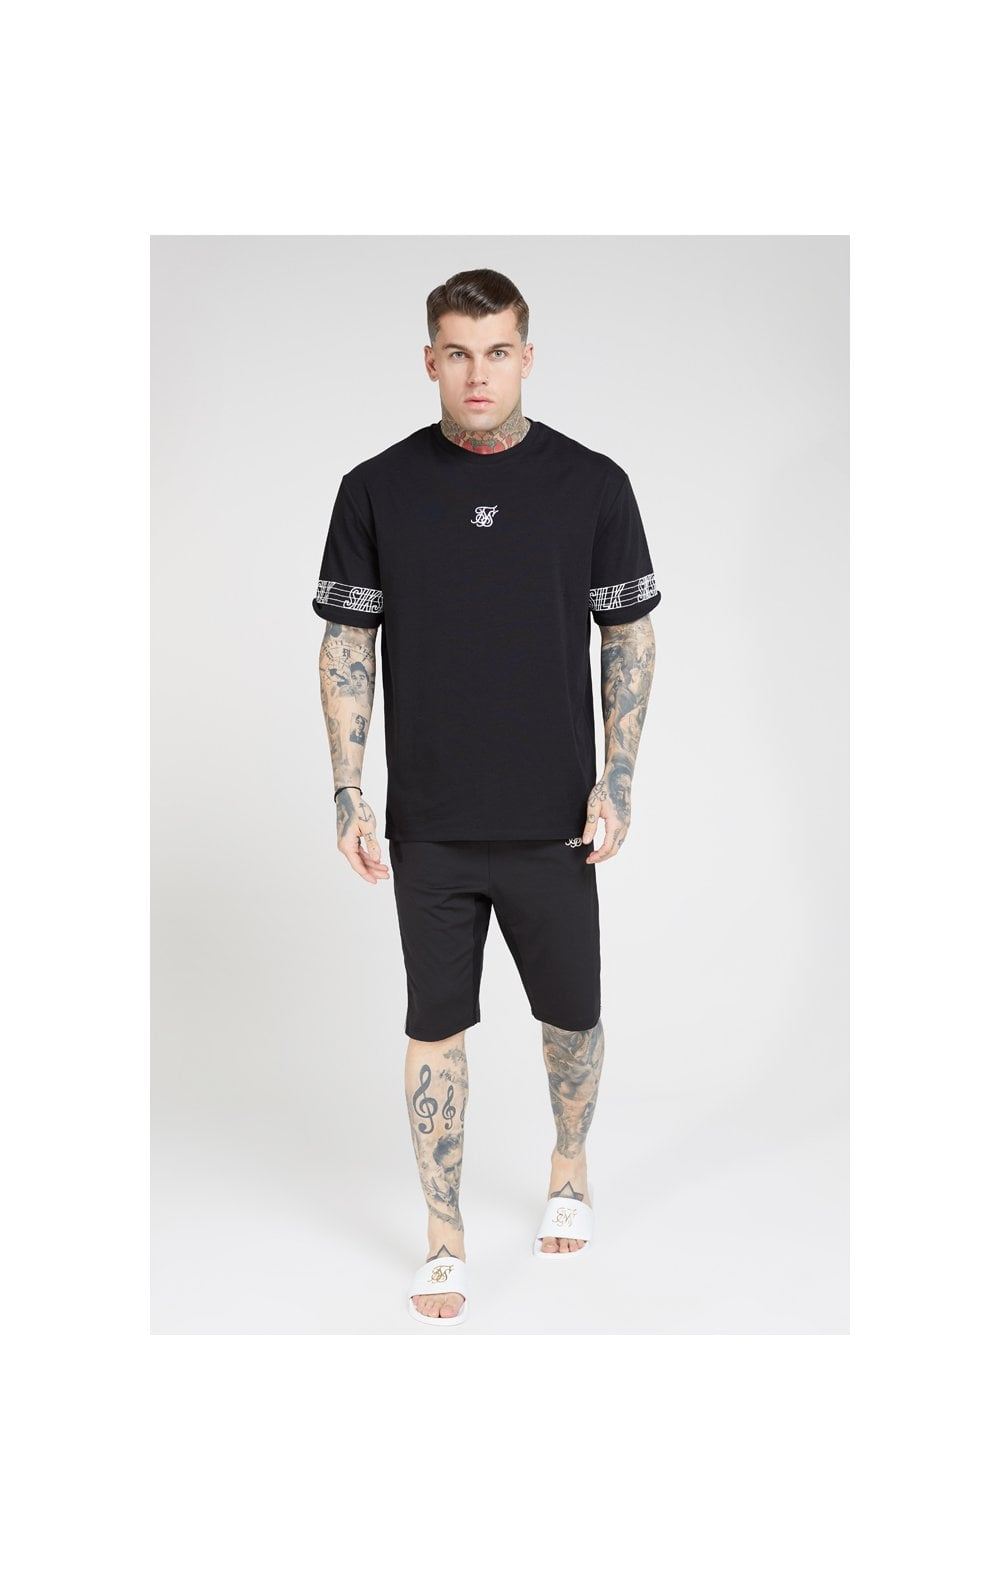 SikSilk S/S Essential Runner Oversized Tee – Black (2)